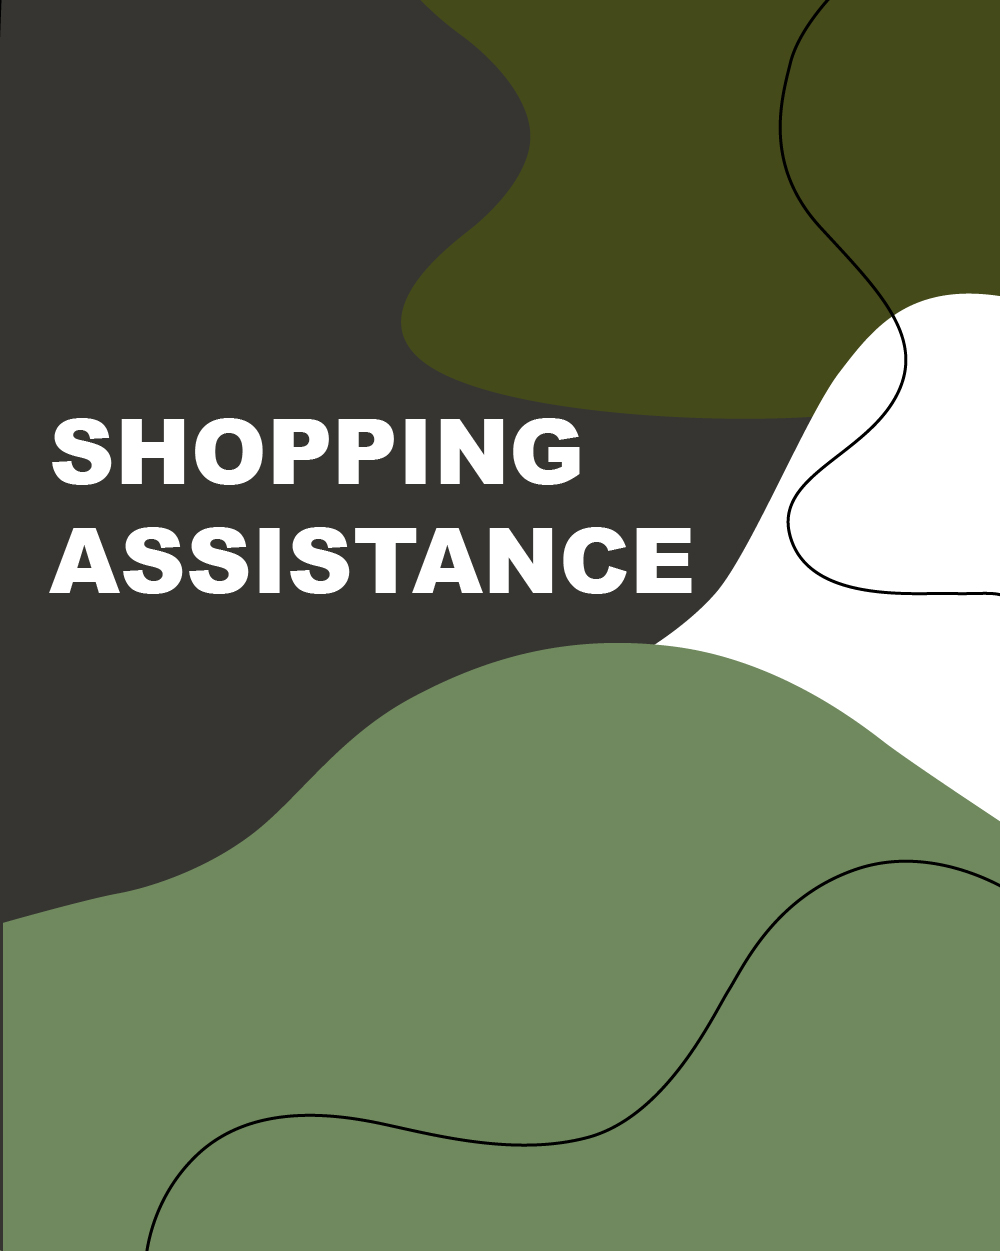 shopping assistance-hov-2-100